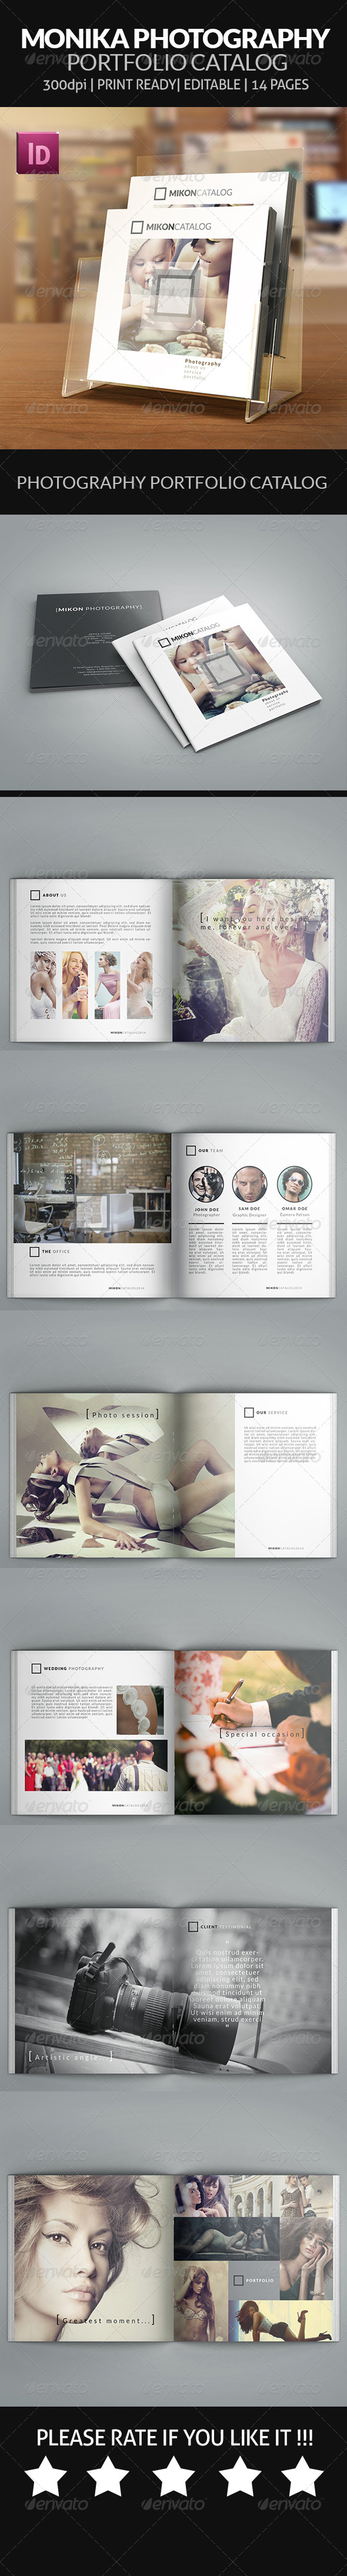 GraphicRiver Mikon Photography Portfolio Square Catalog 7721236